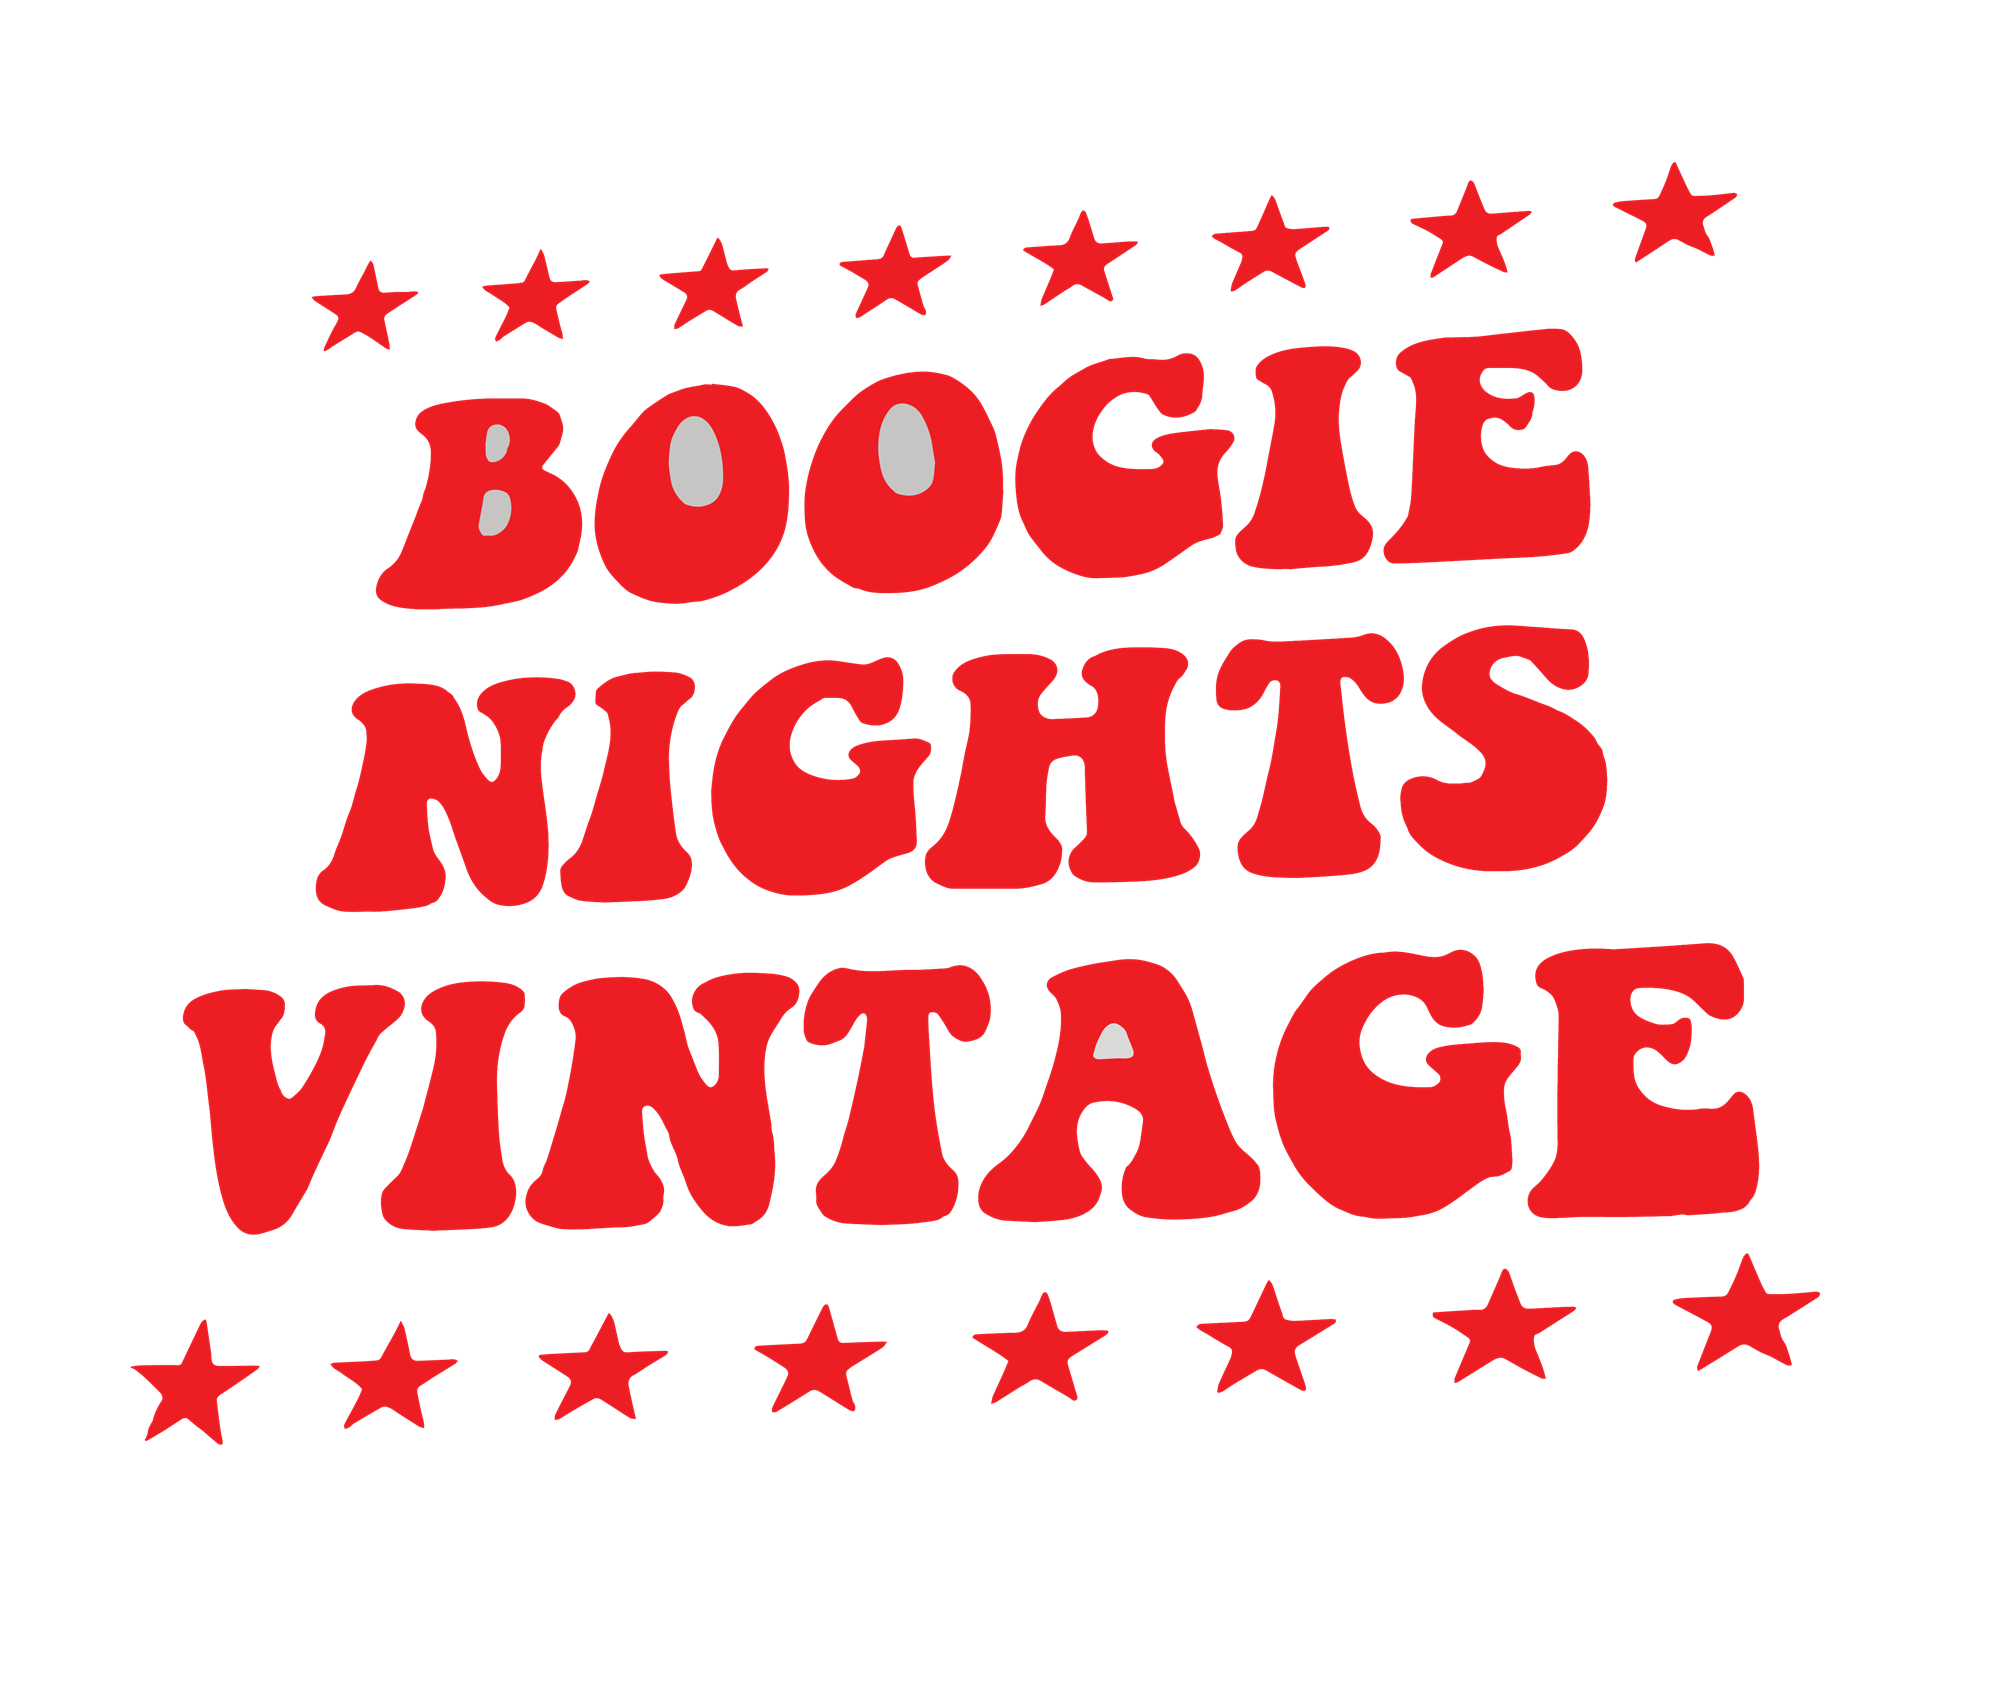 Boogie Nights Vintage